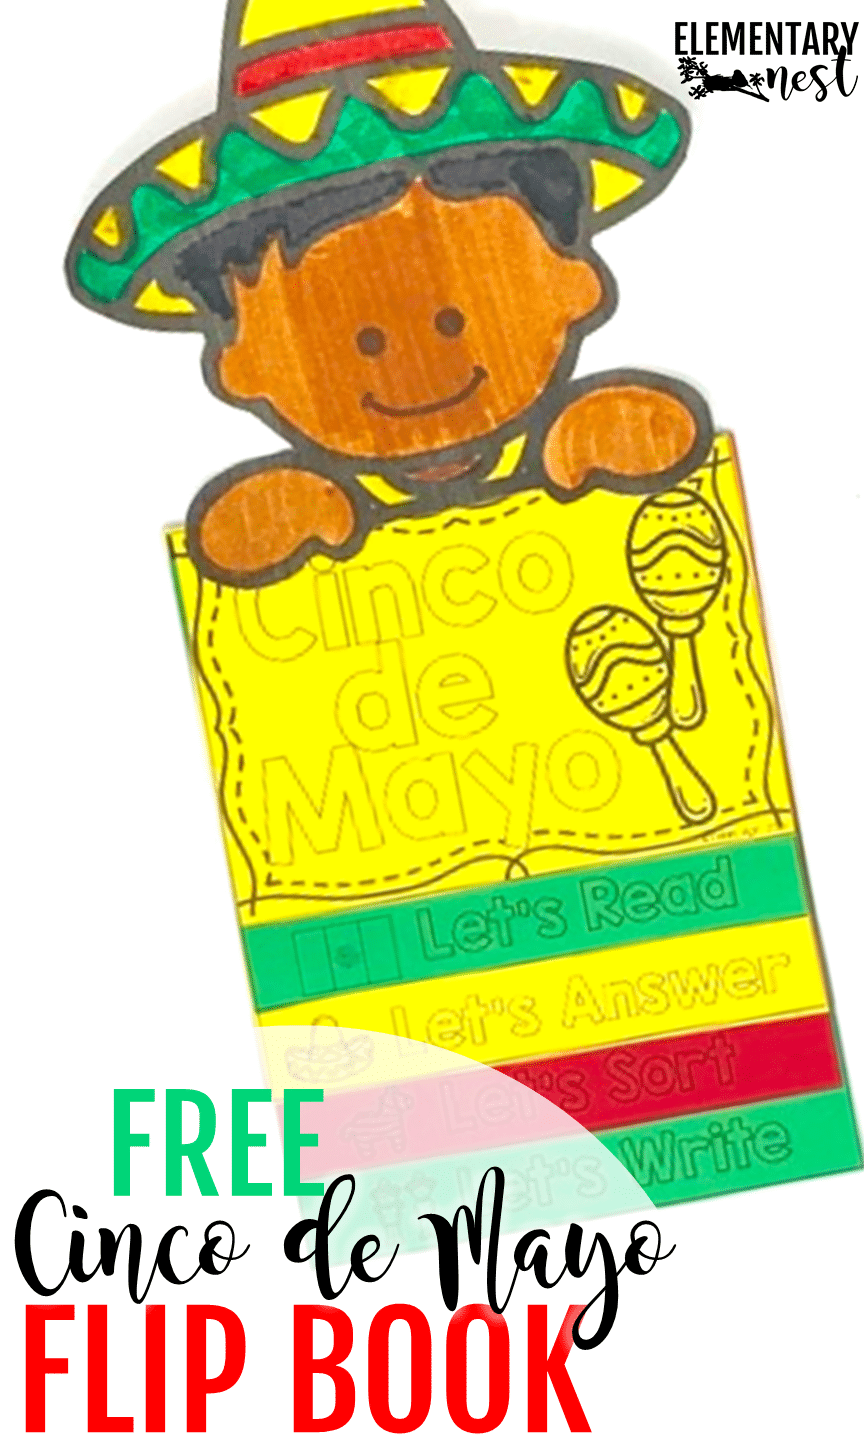 FREE Cinco de Mayo activity for kids with a nonfiction reading passage about Cinco de Mayo, plus reading comprehension activities.